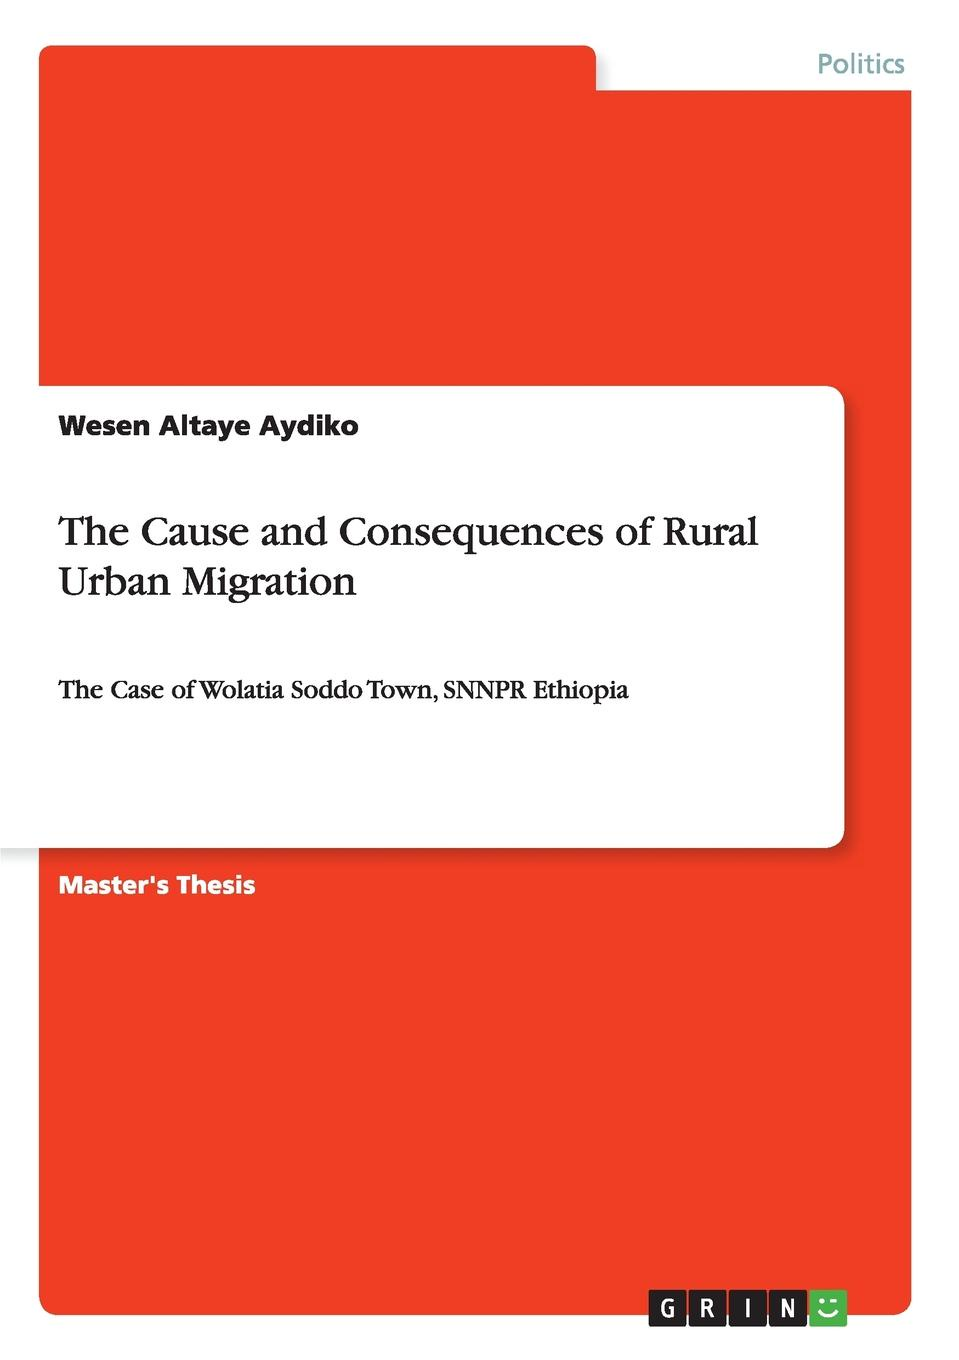 Wesen Altaye Aydiko The Cause and Consequences of Rural Urban Migration comparison of rural and urban quality of life of bolpur p s